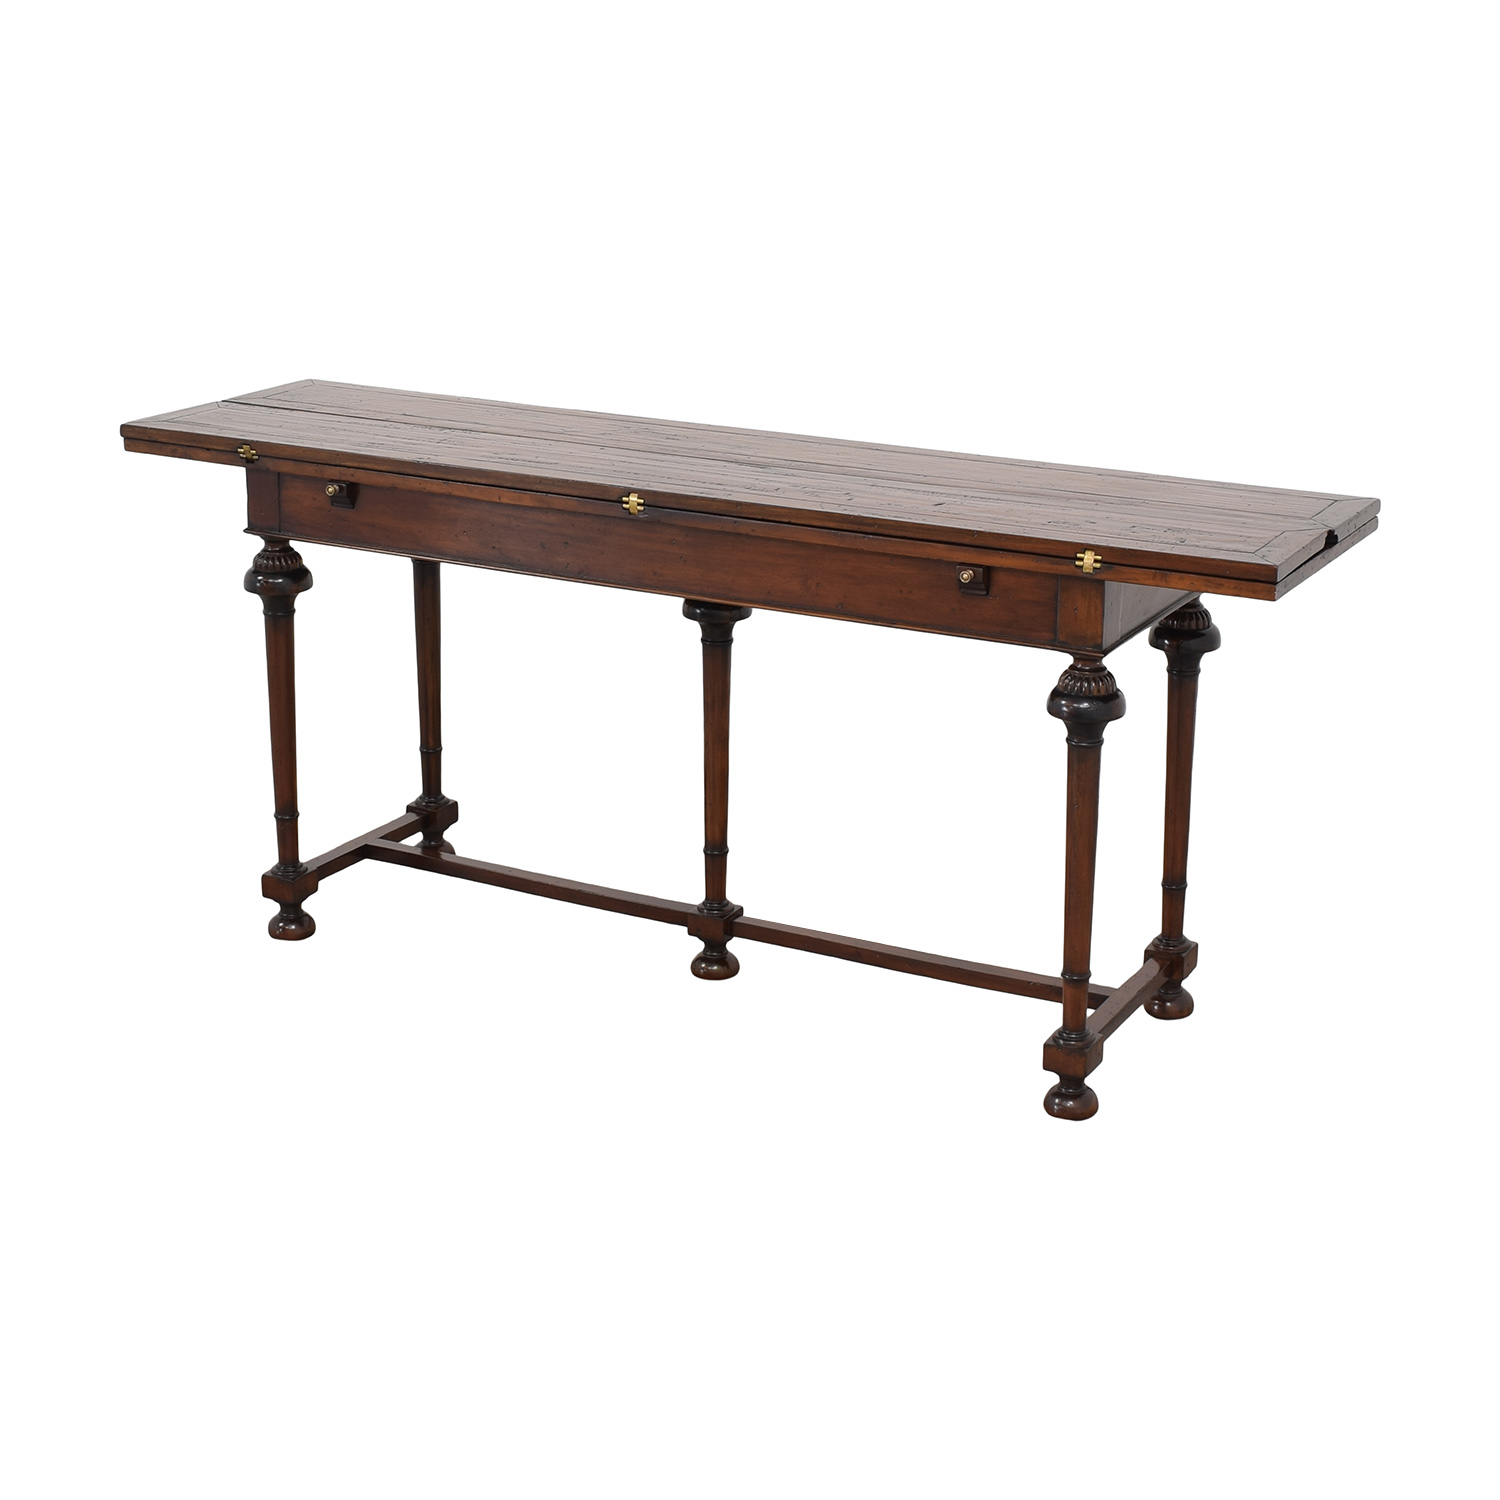 Harden Harden Collapsible Console Table ct